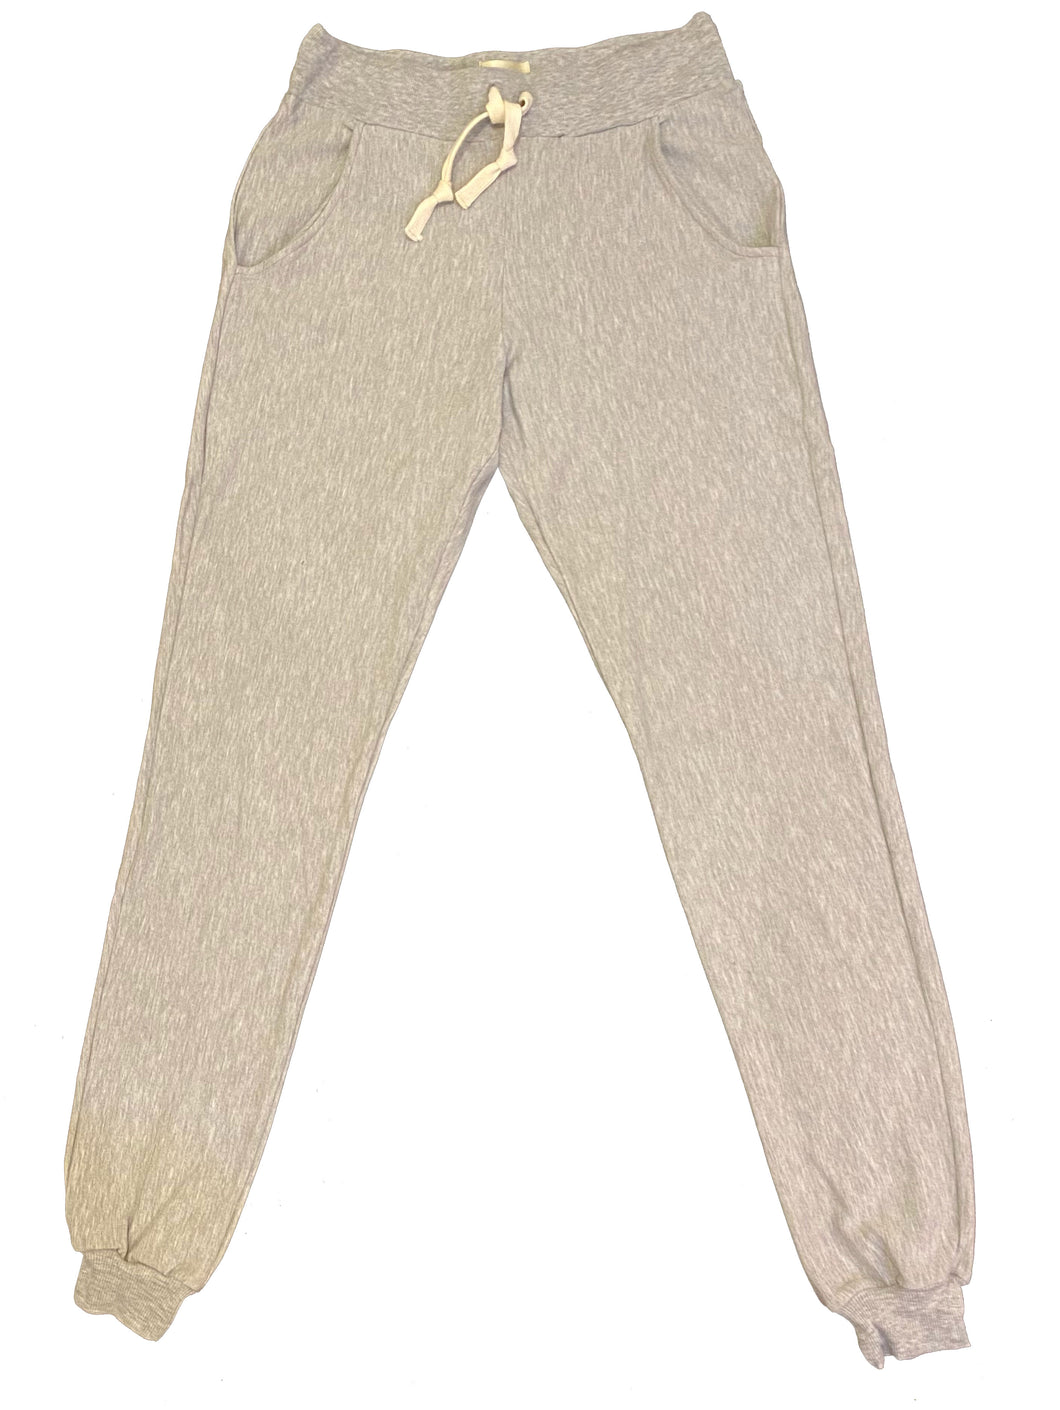 Women's Loungewear Pant - Heather Grey